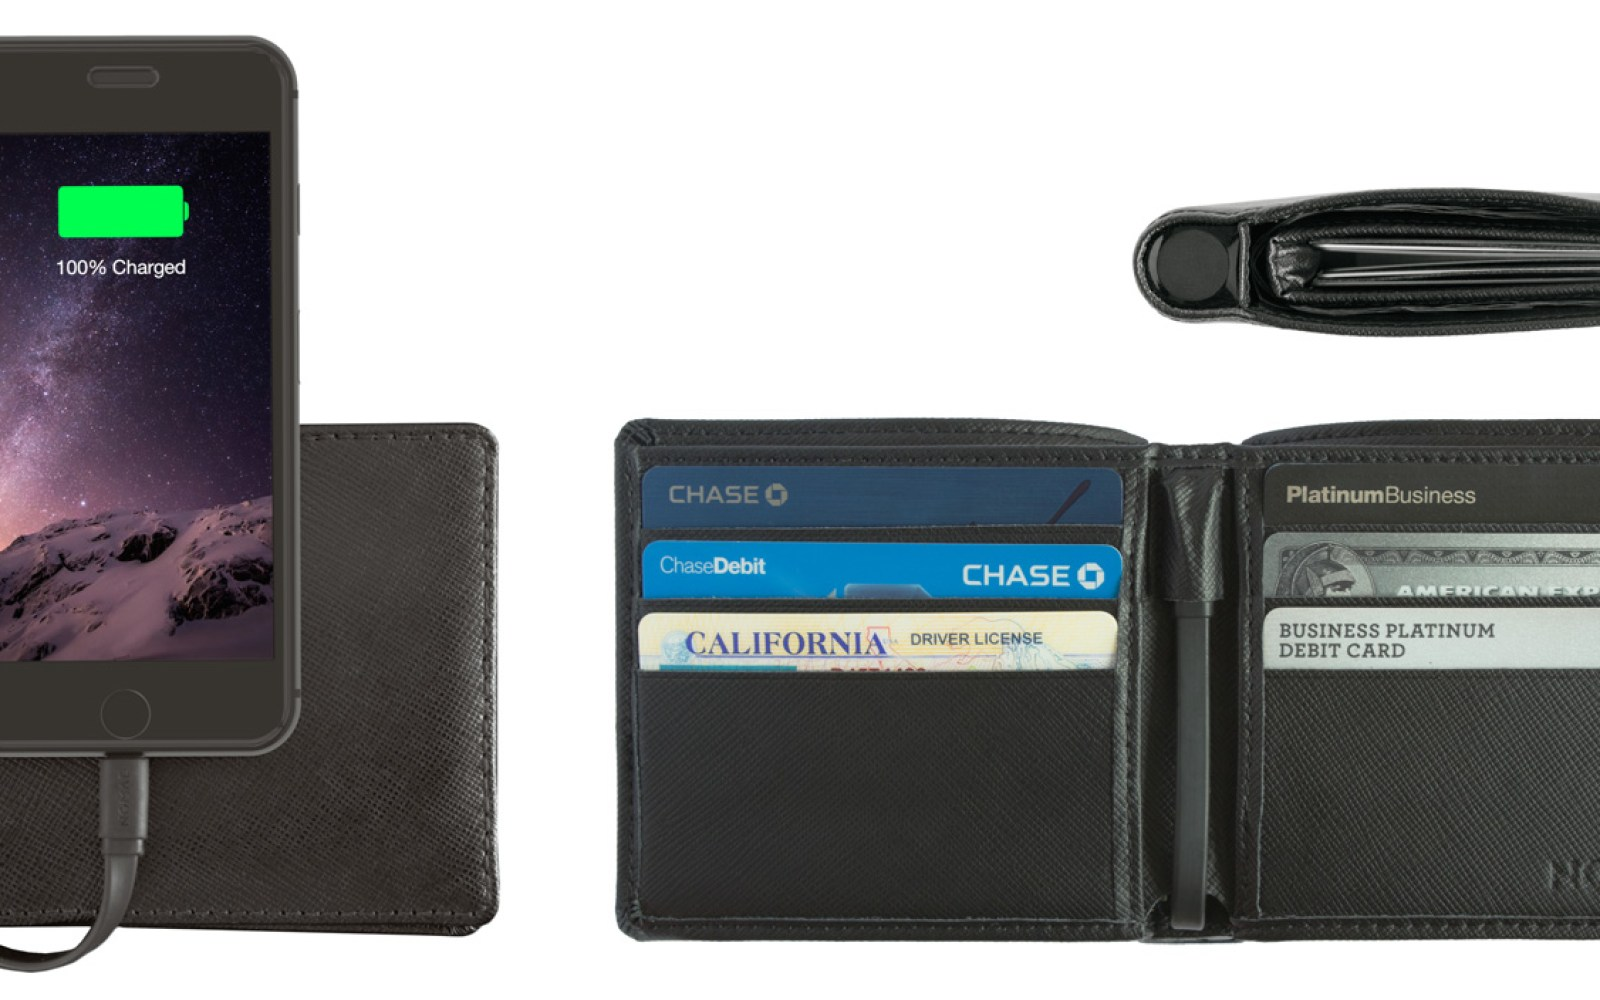 Nomad debuts Wallet for iPhone, hiding a 2400mAh Lightning battery in a traditional bifold wallet